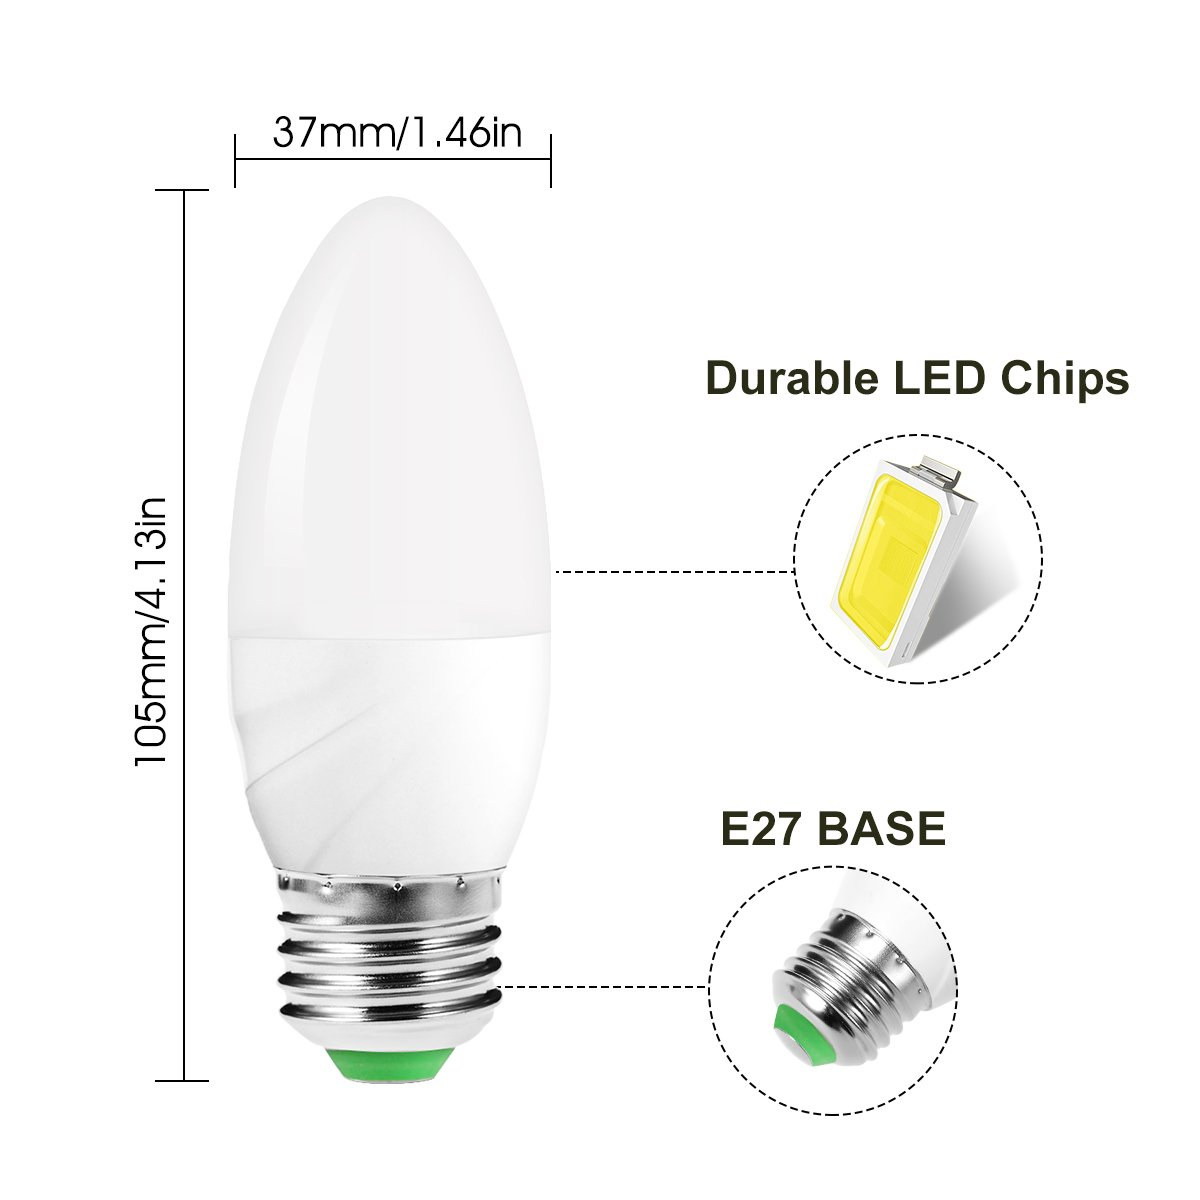 Jandcase 6w60w Light Sensor Candle Bulb Day White 6000k Dusk Till Build A Circuit Science The Lab Dawn E27 Led 550lm Auto On Off Night Smart Indoor Outdoor Lamp